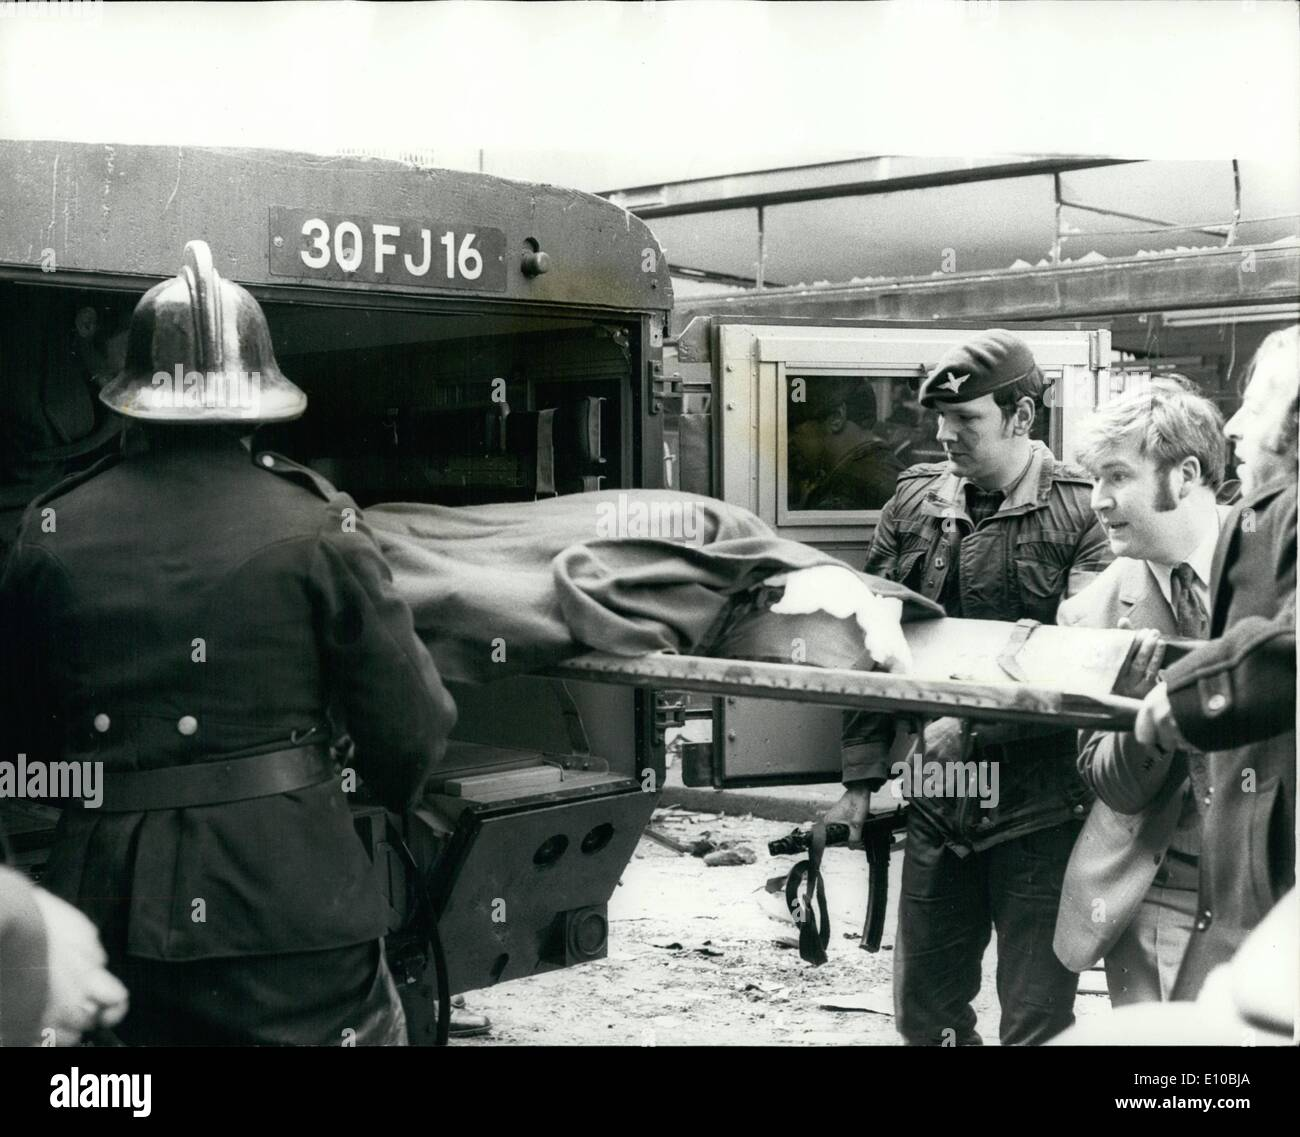 Mar. 03, 1972 - 6 KILLED AND 146 INJURED IN BOMB EXPLOSION IN BELFAST. Six people were killed and 146 injured by - Stock Image